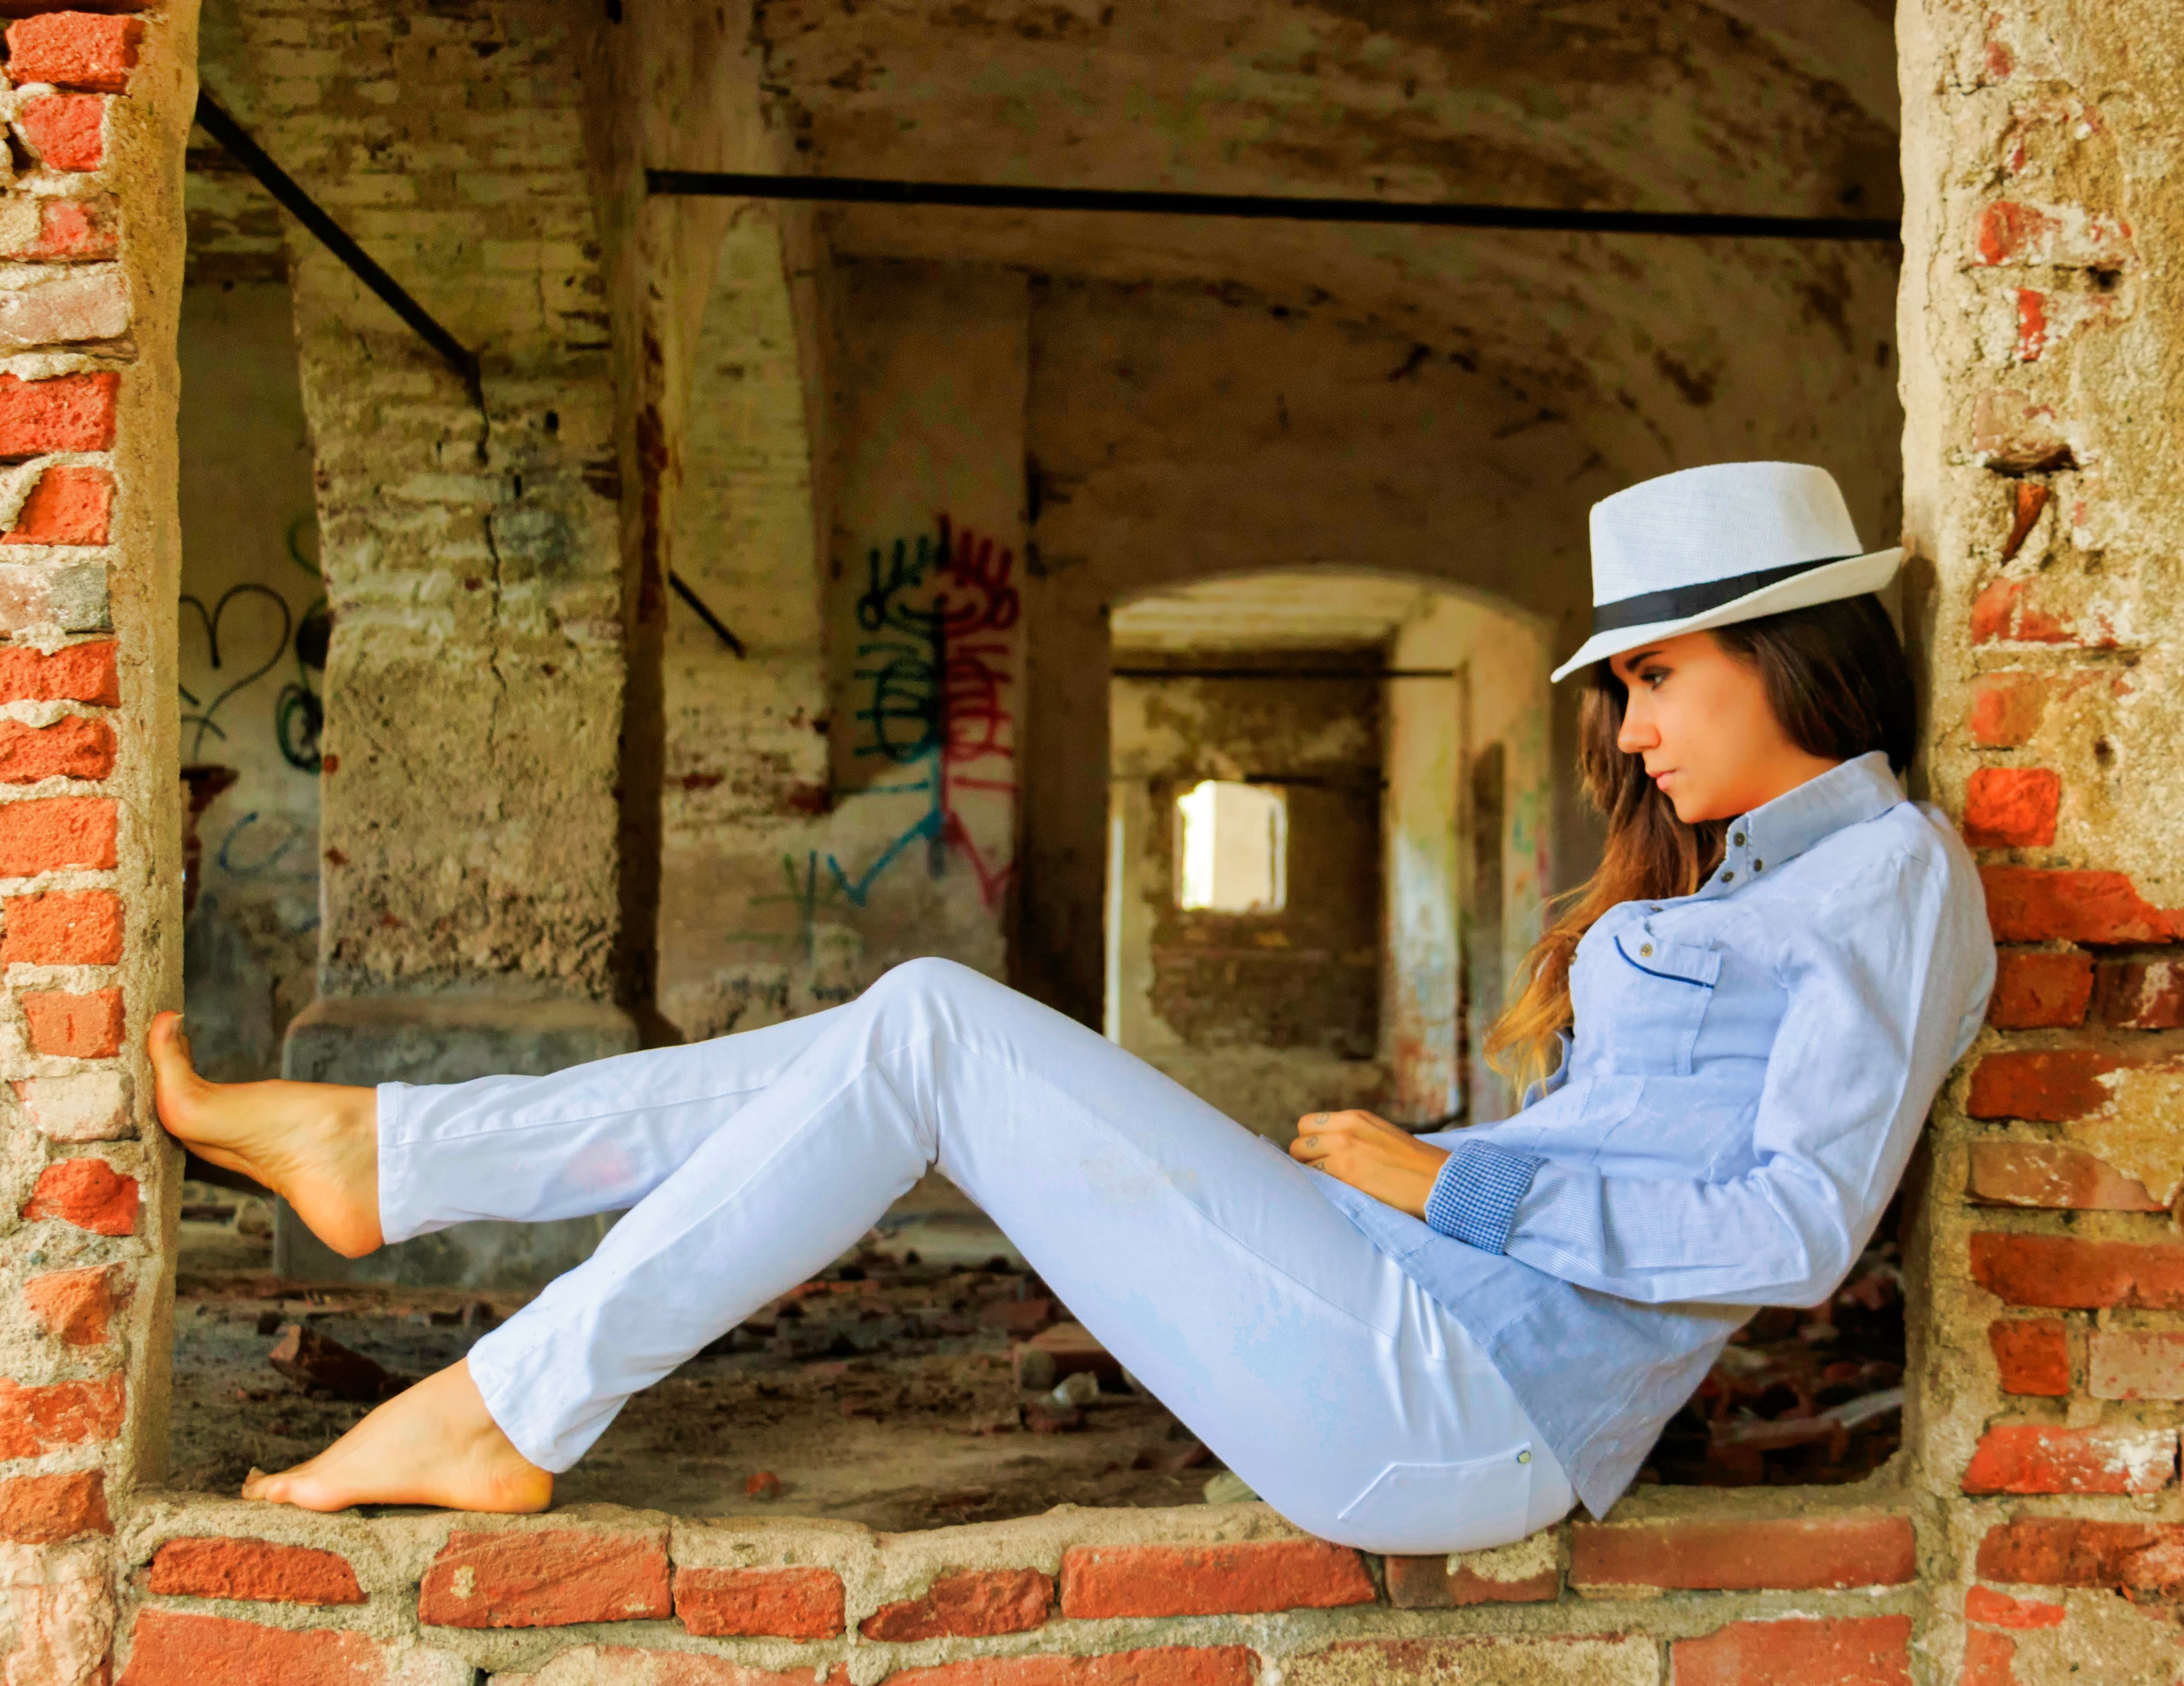 Woman in Blue Chambray Shirt and Blue Denim Jeans Posing for a Photo